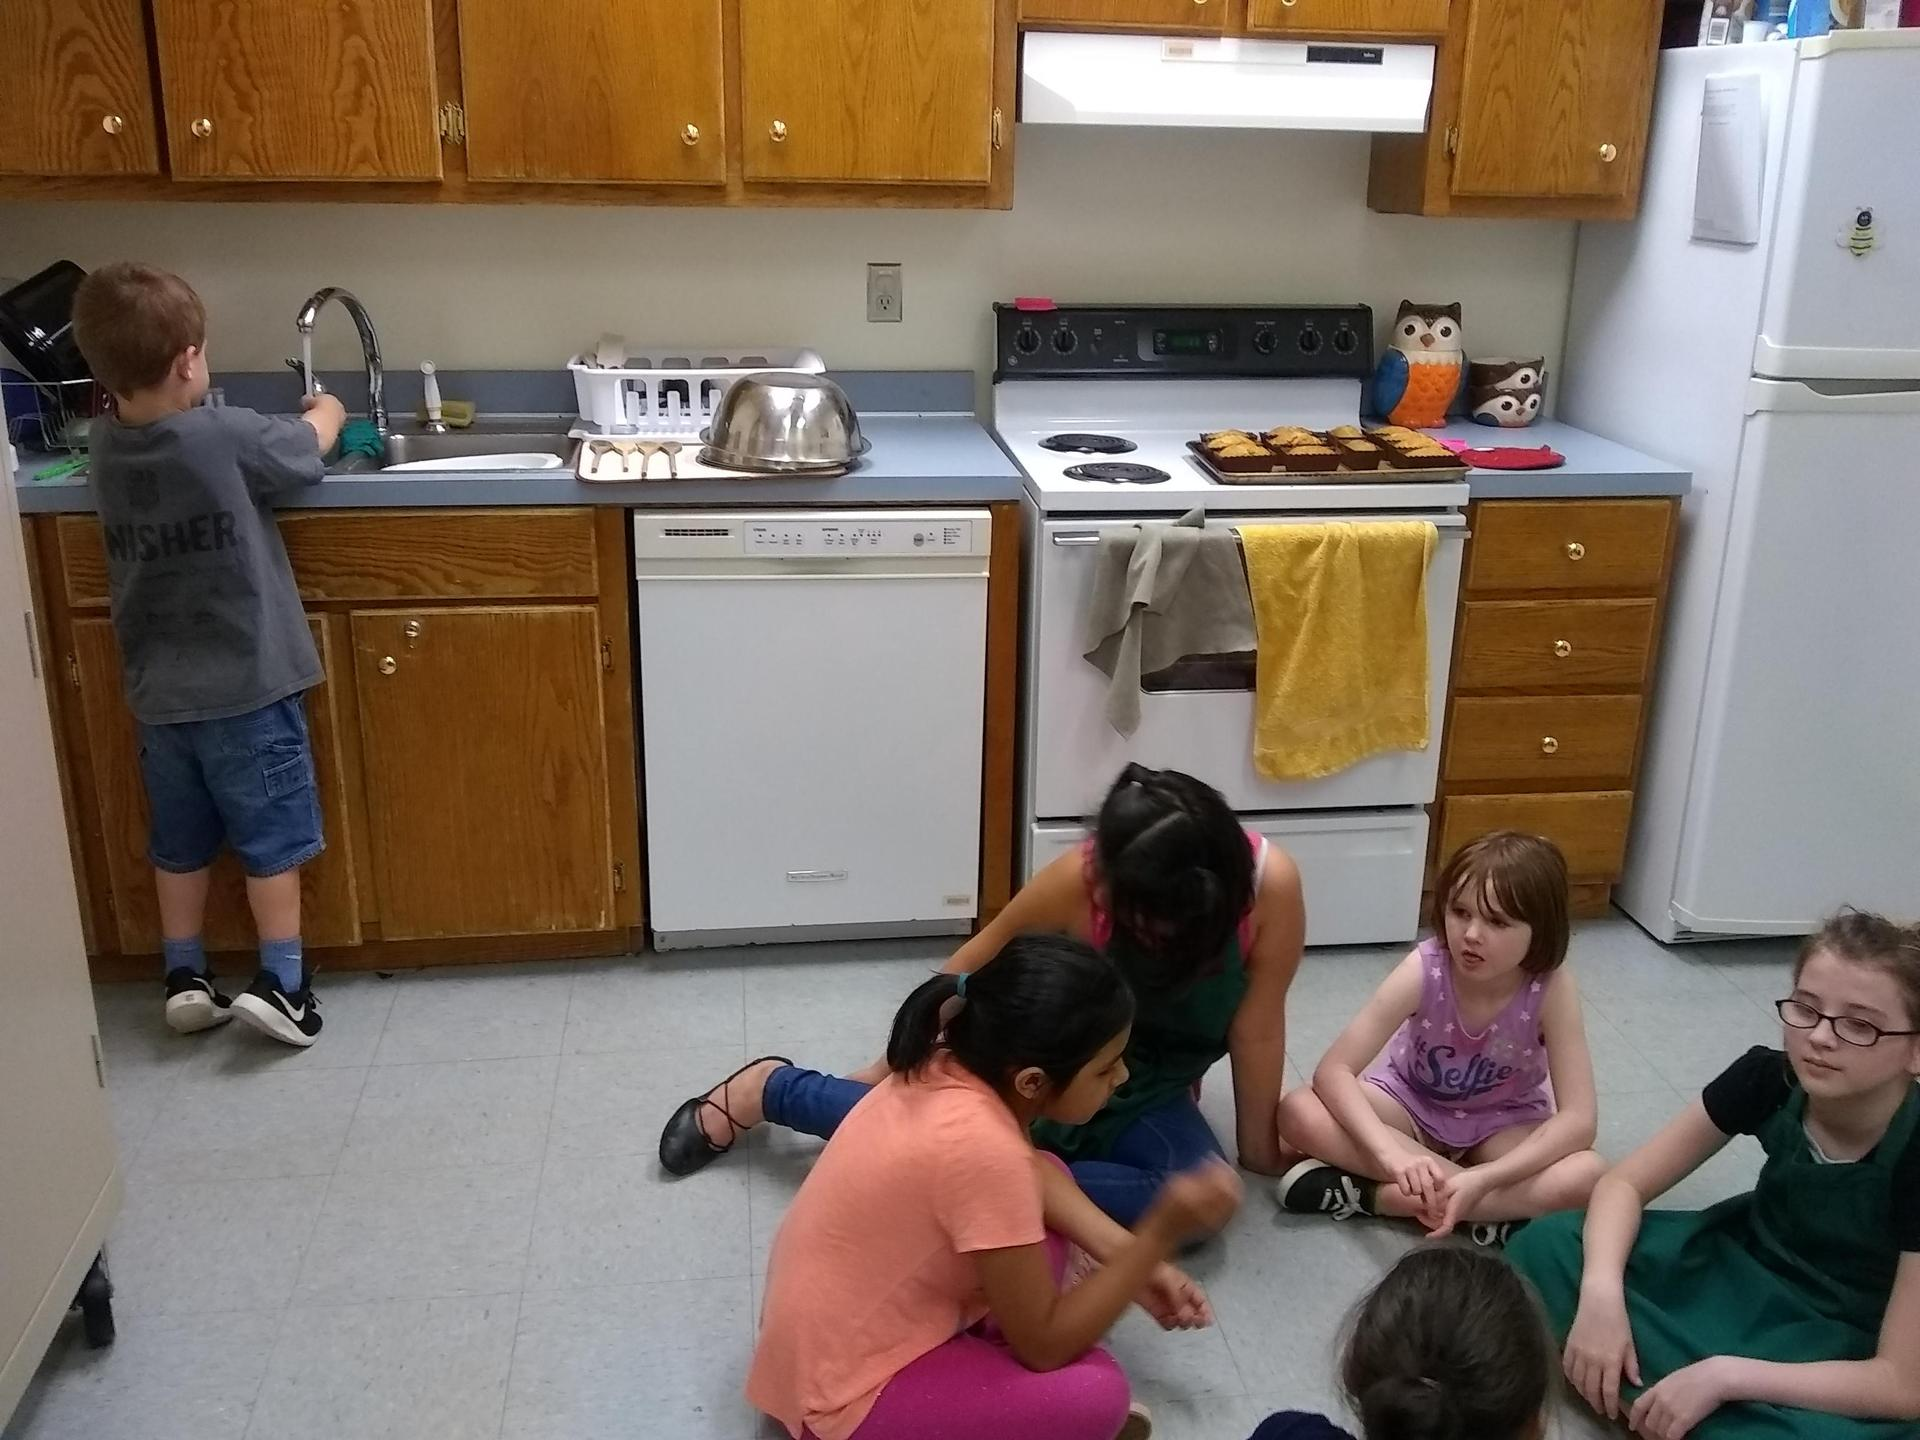 kids waiting in the kitchen patiently